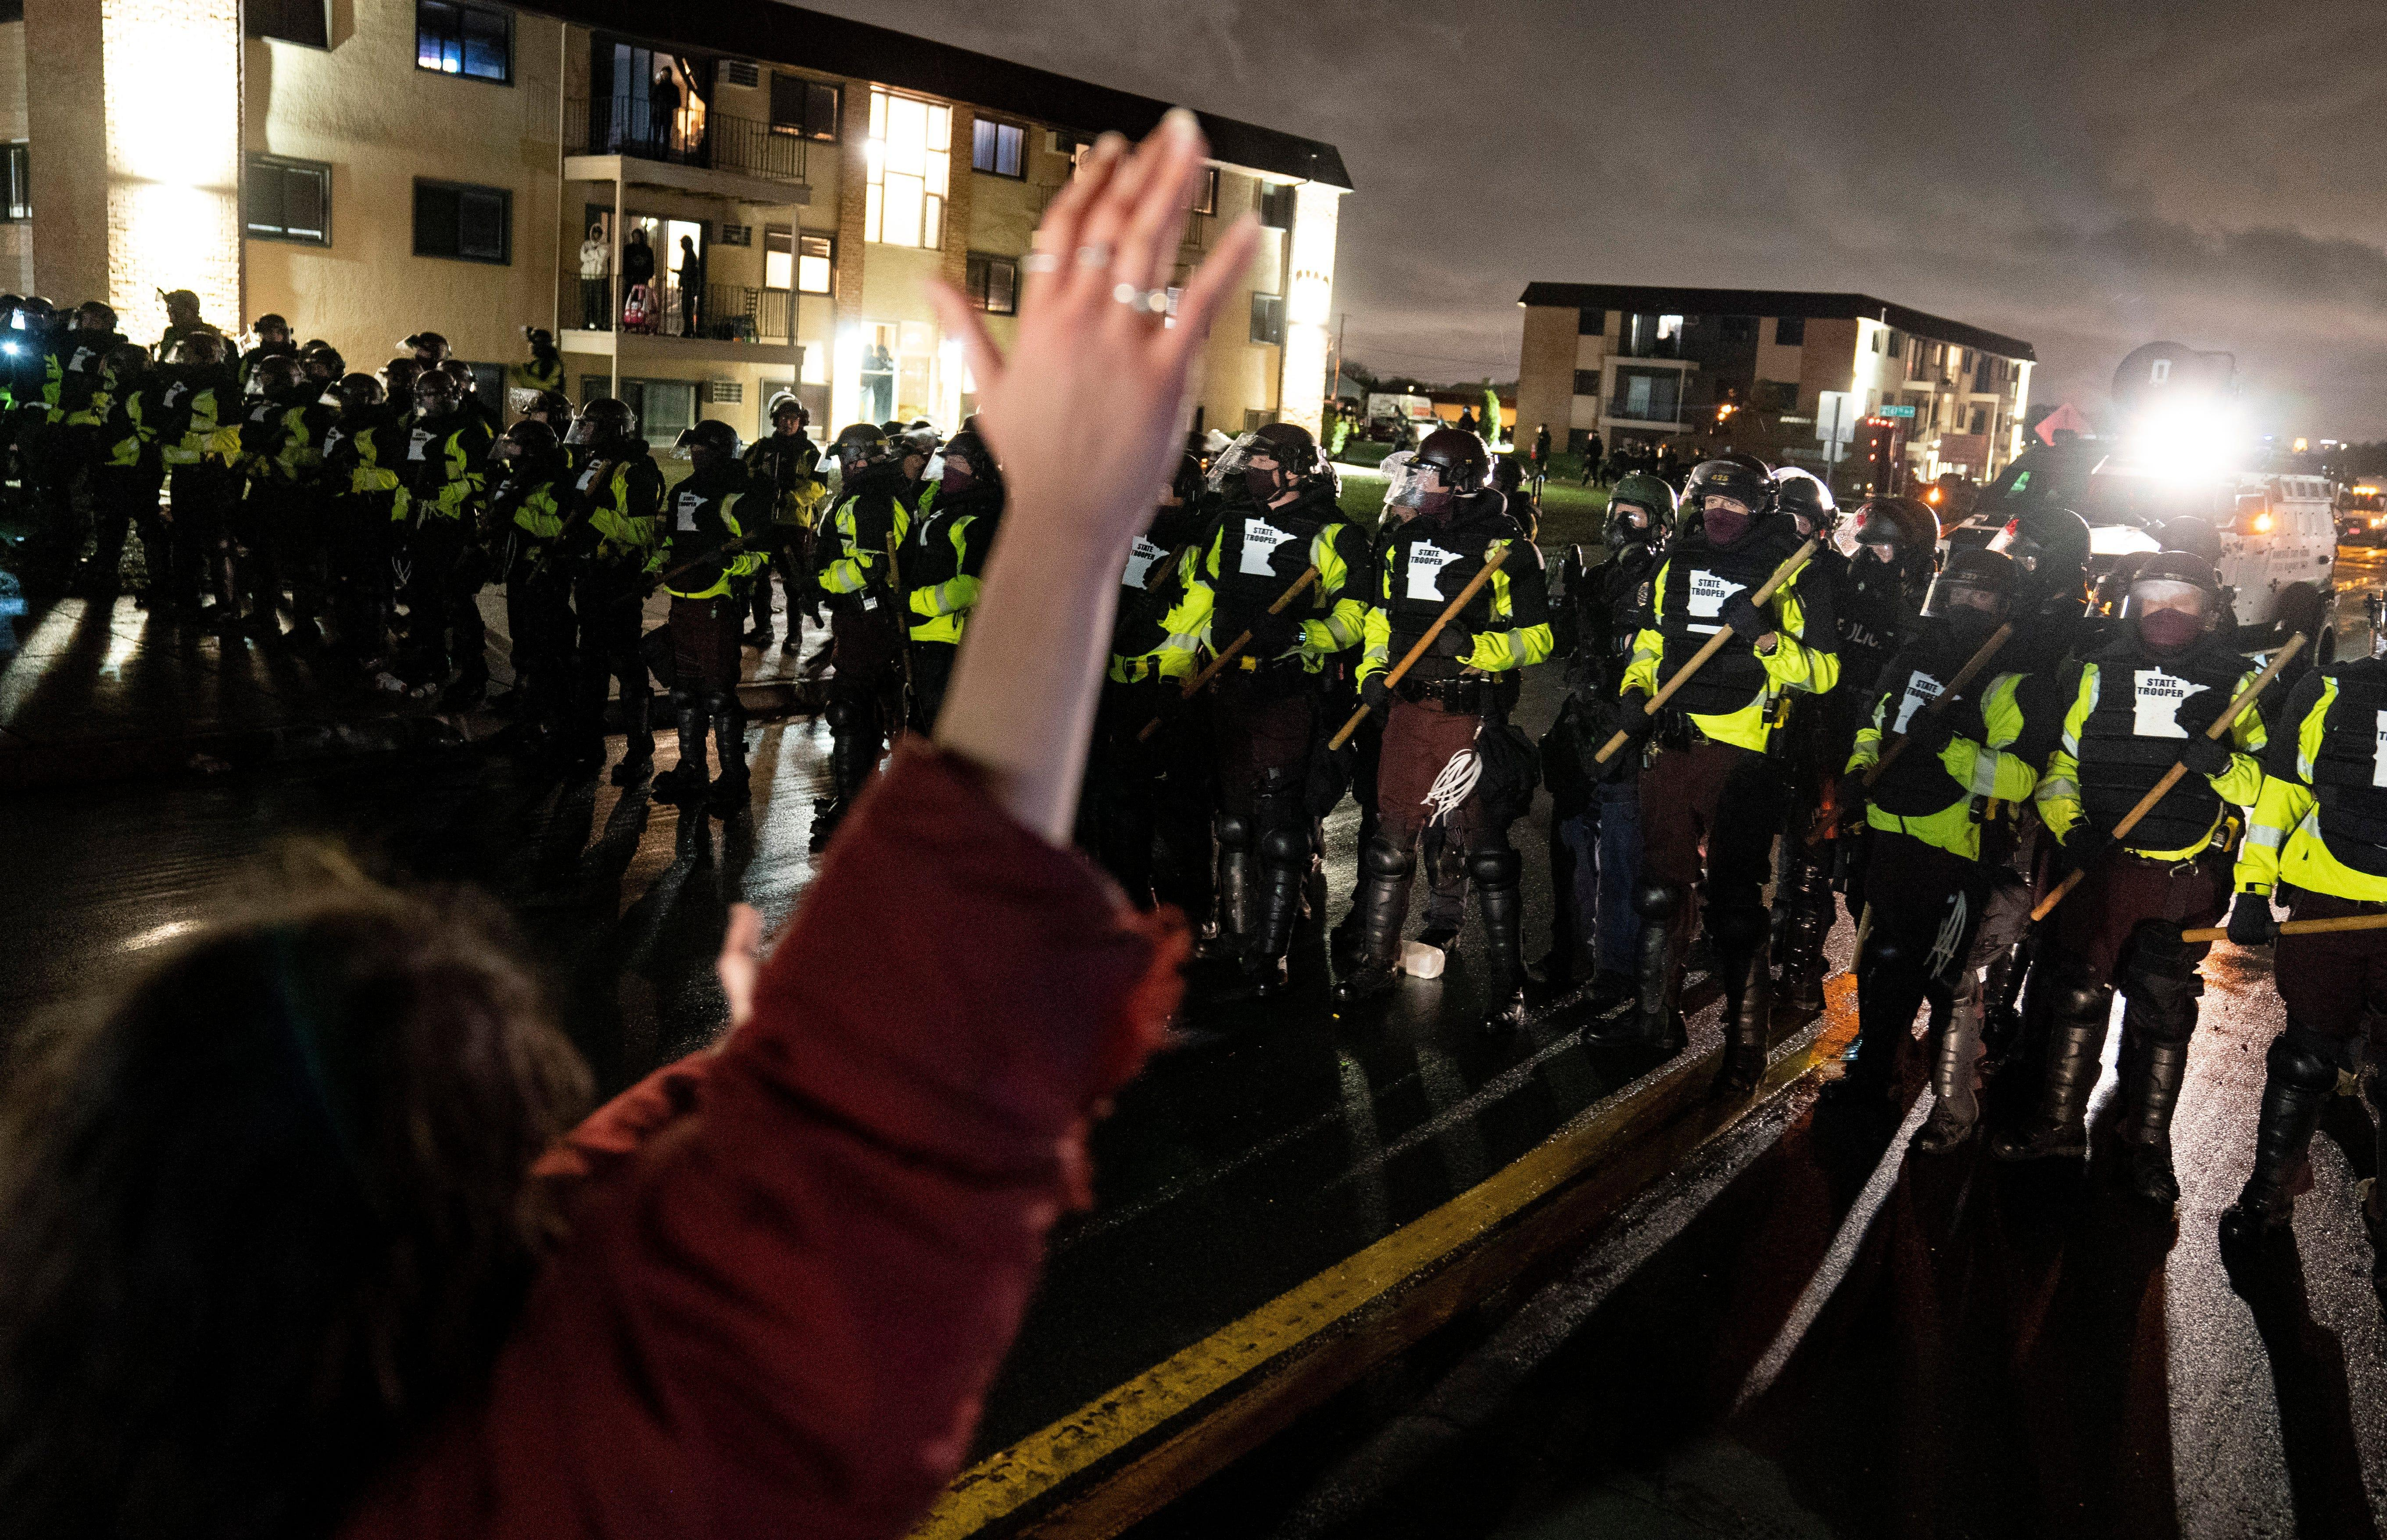 Protesters face off with state troopers in a city on edge